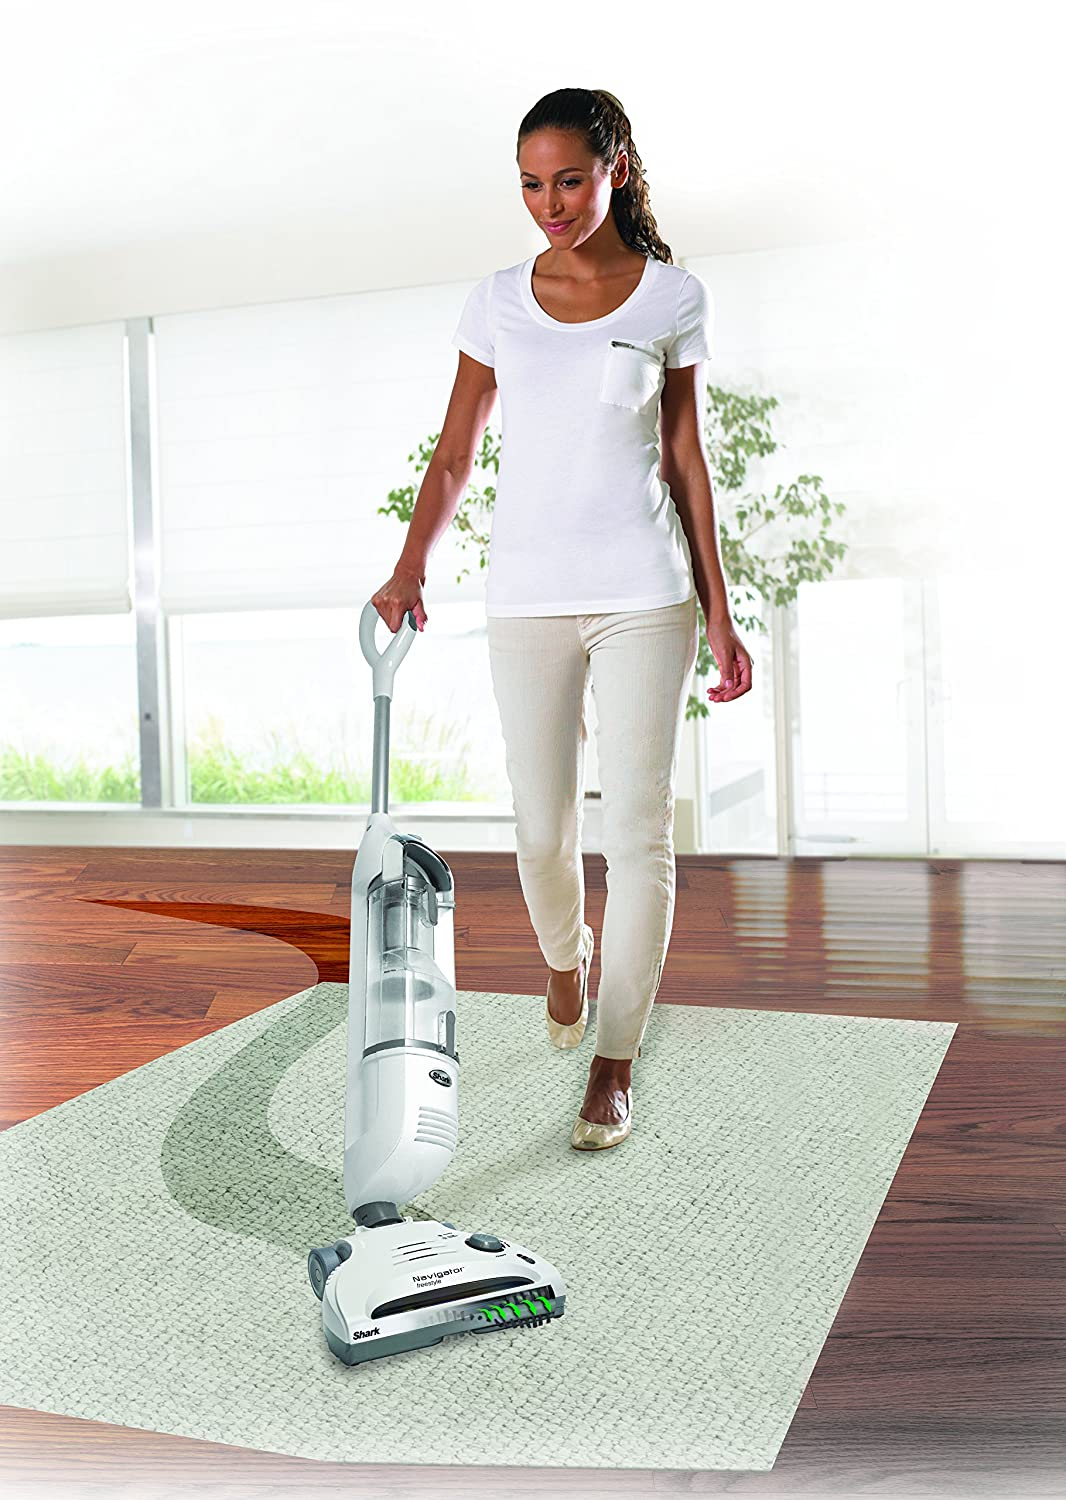 List Of Best Vacuums For Small Apartments